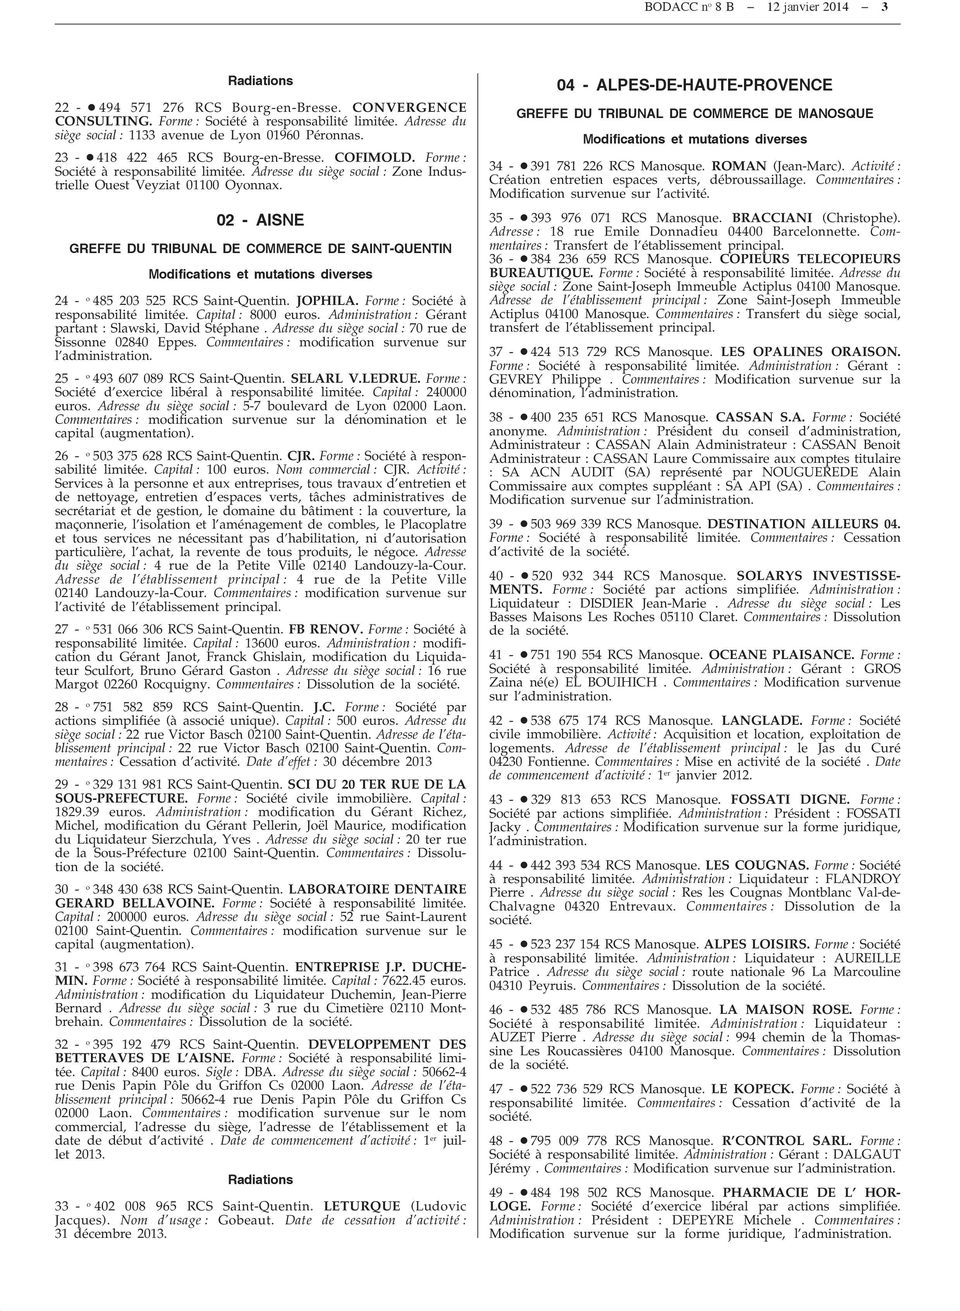 Bodacc bulletin officiel des annex au journal officiel de la r publique fran aise bodacc c - Greffe du tribunal de commerce salon de provence ...